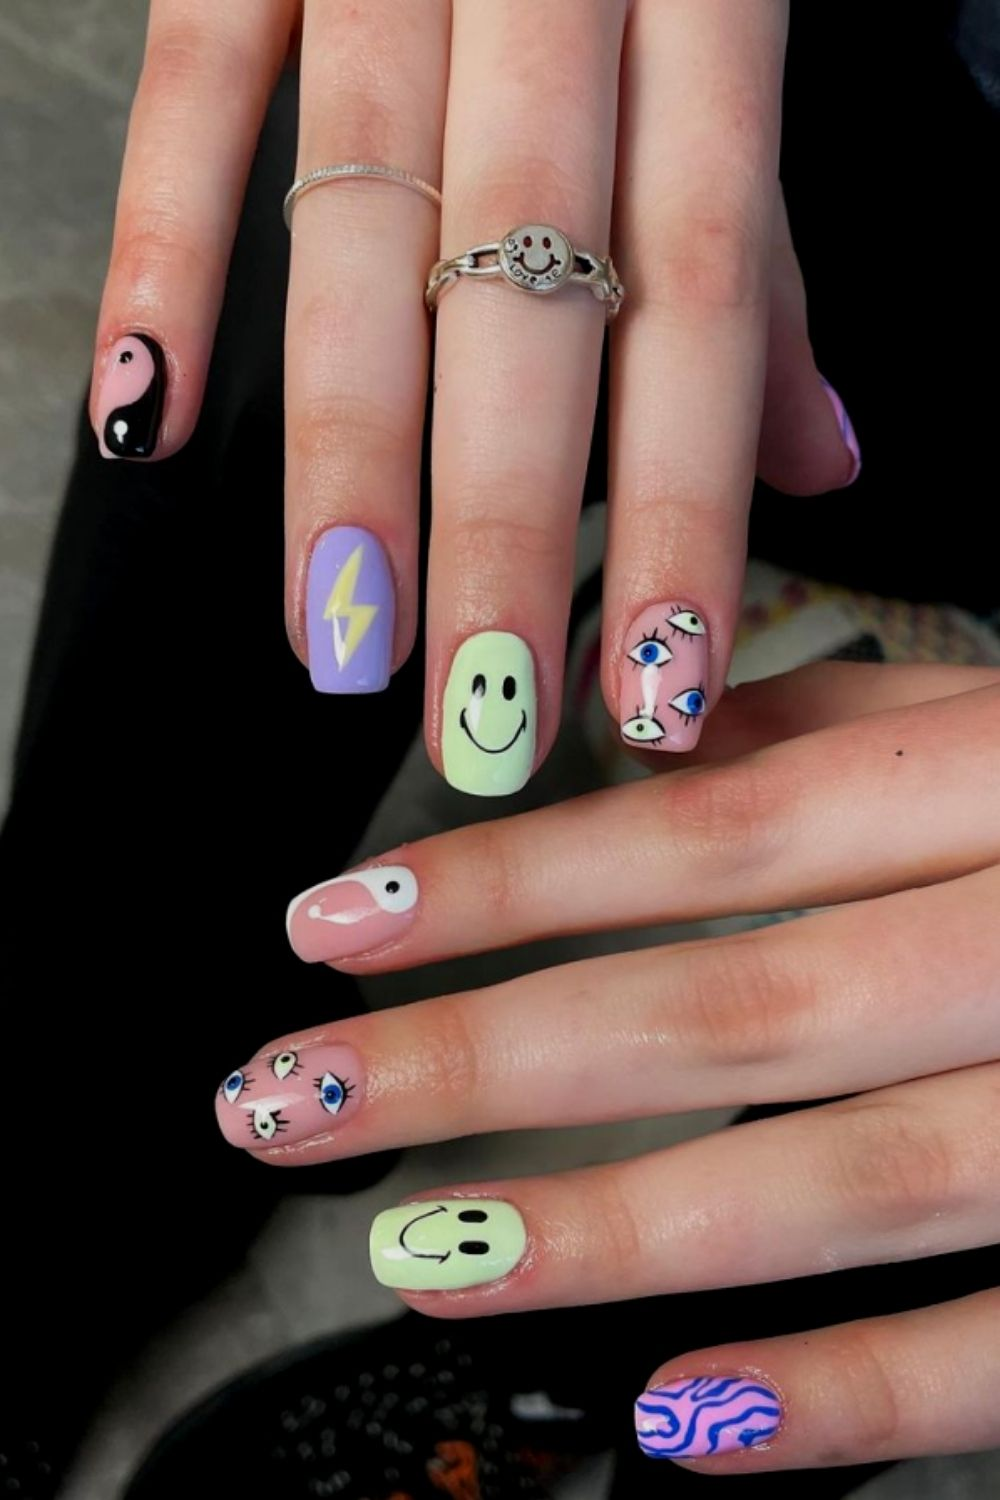 Short nails designs with smiling faces and eyes